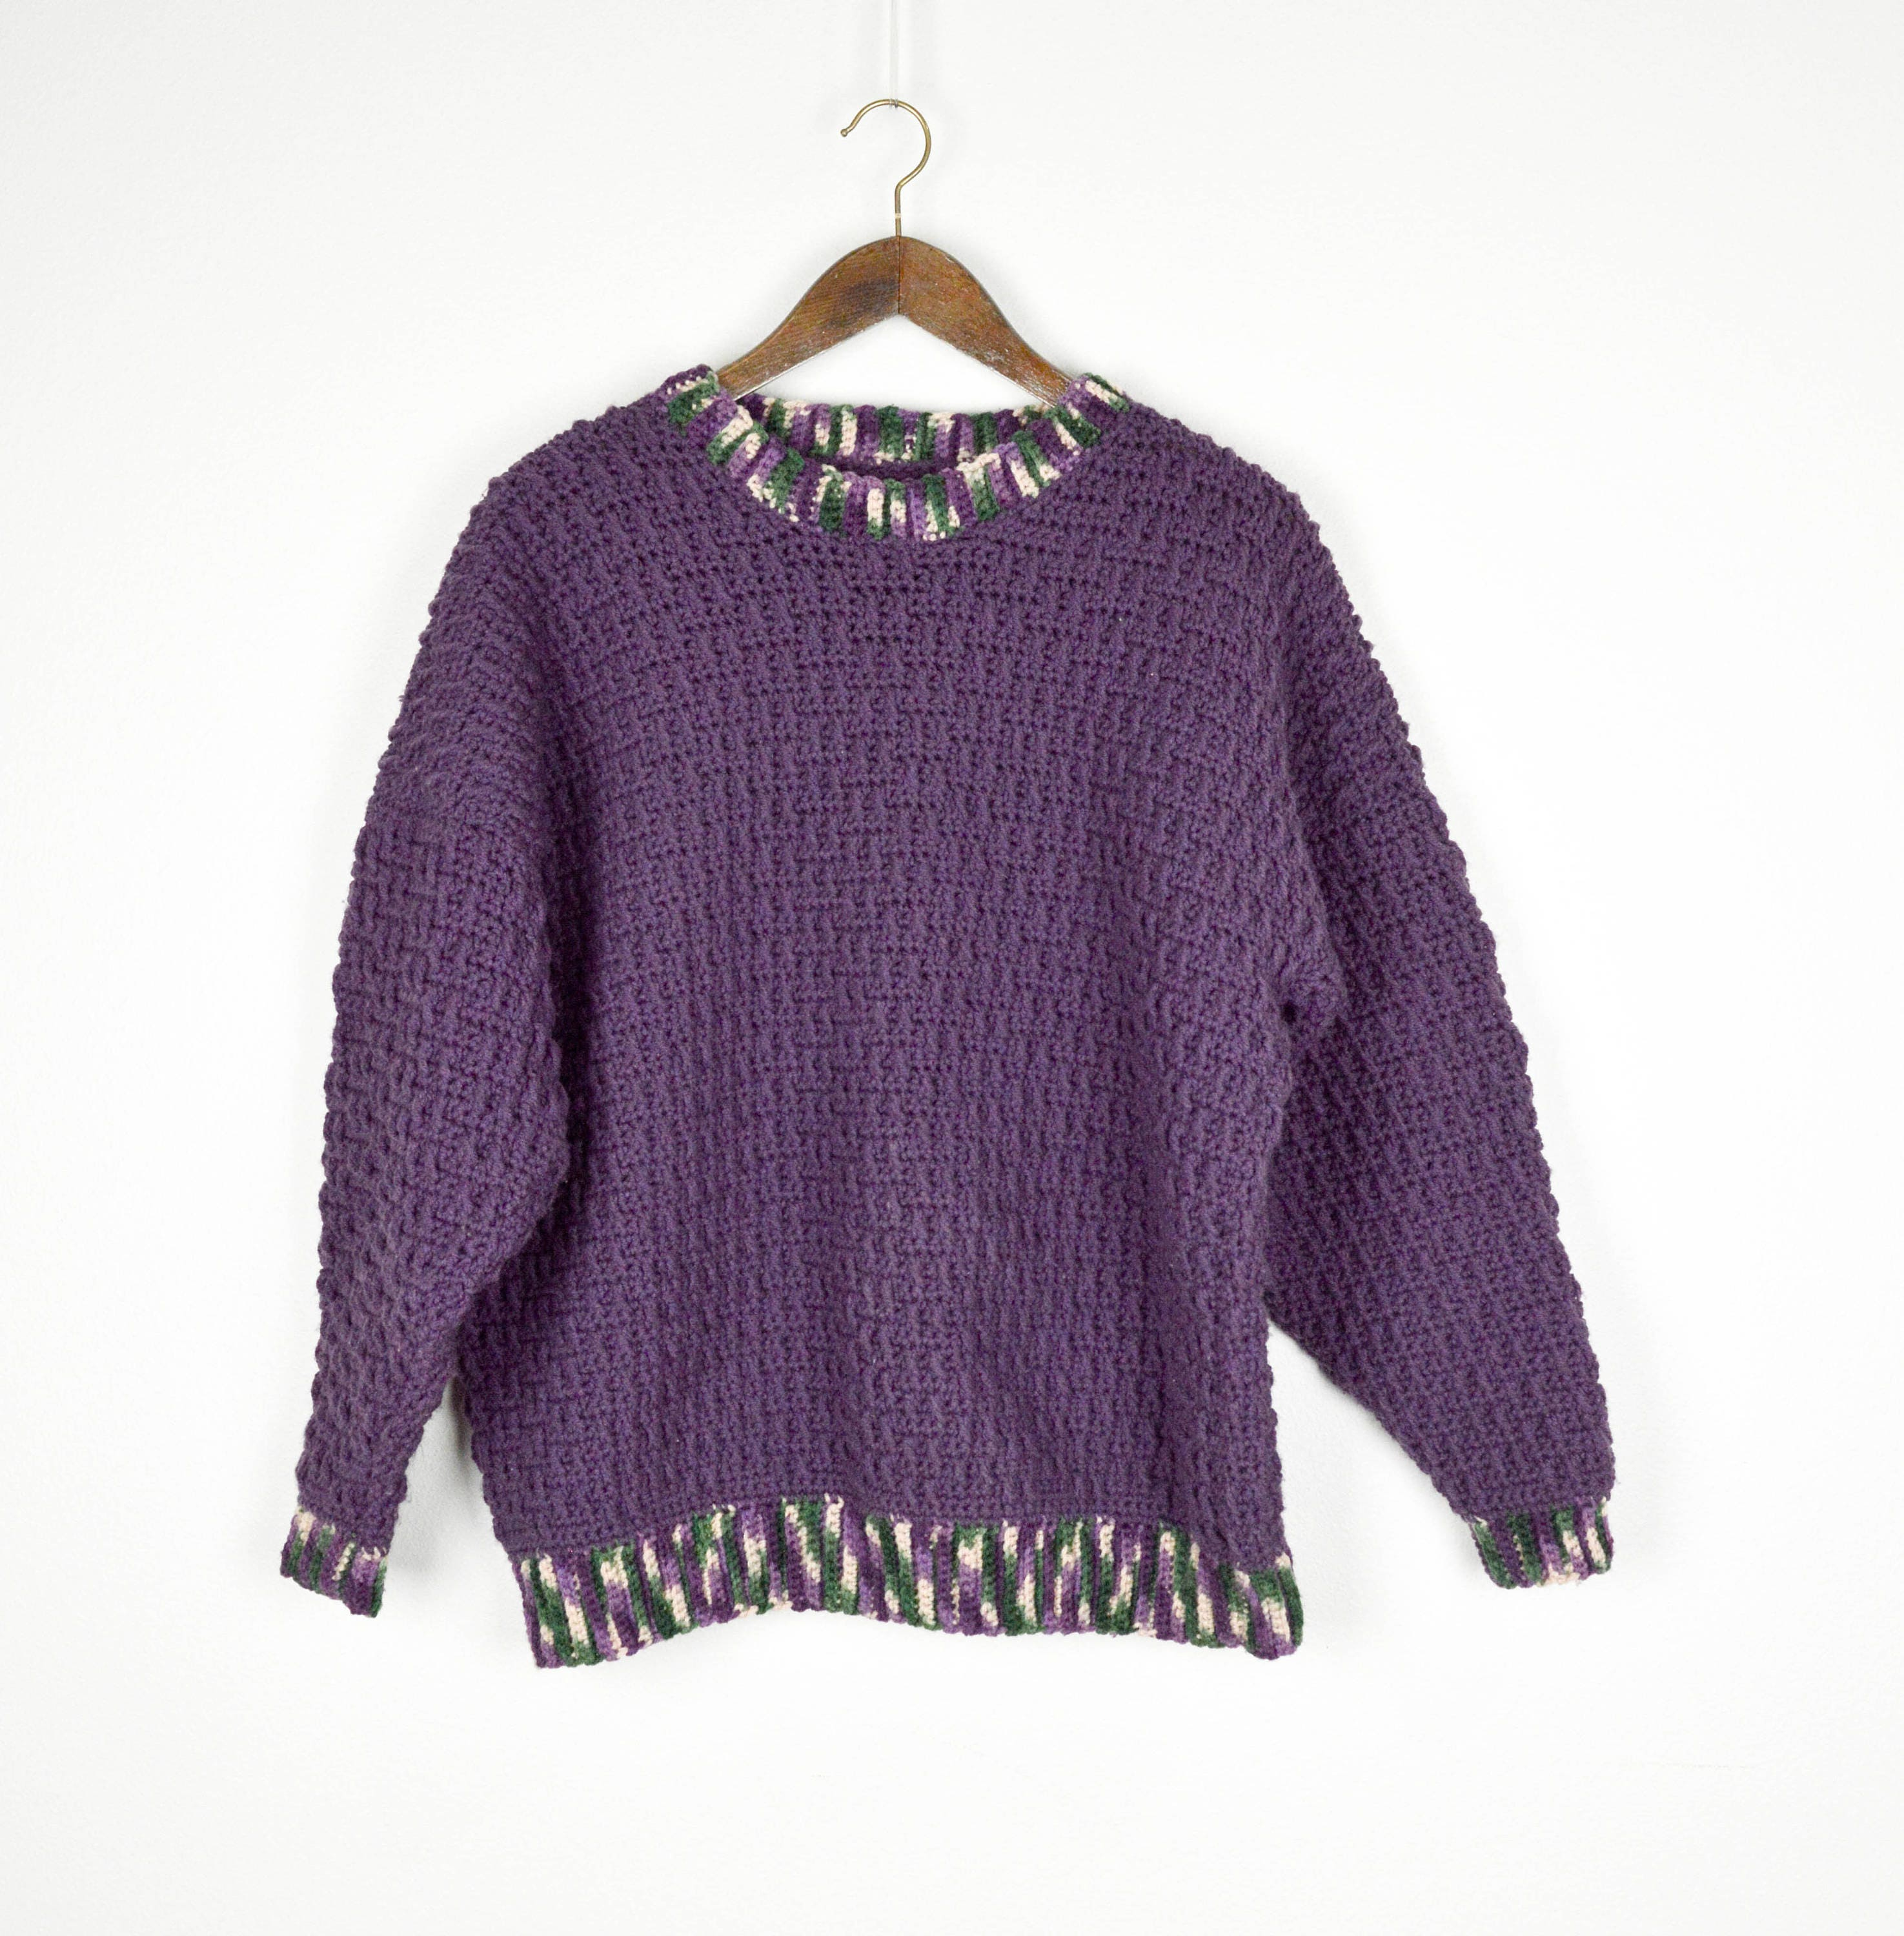 Vintage Hand Knit Sweater Chunky Knit Sweater Vintage